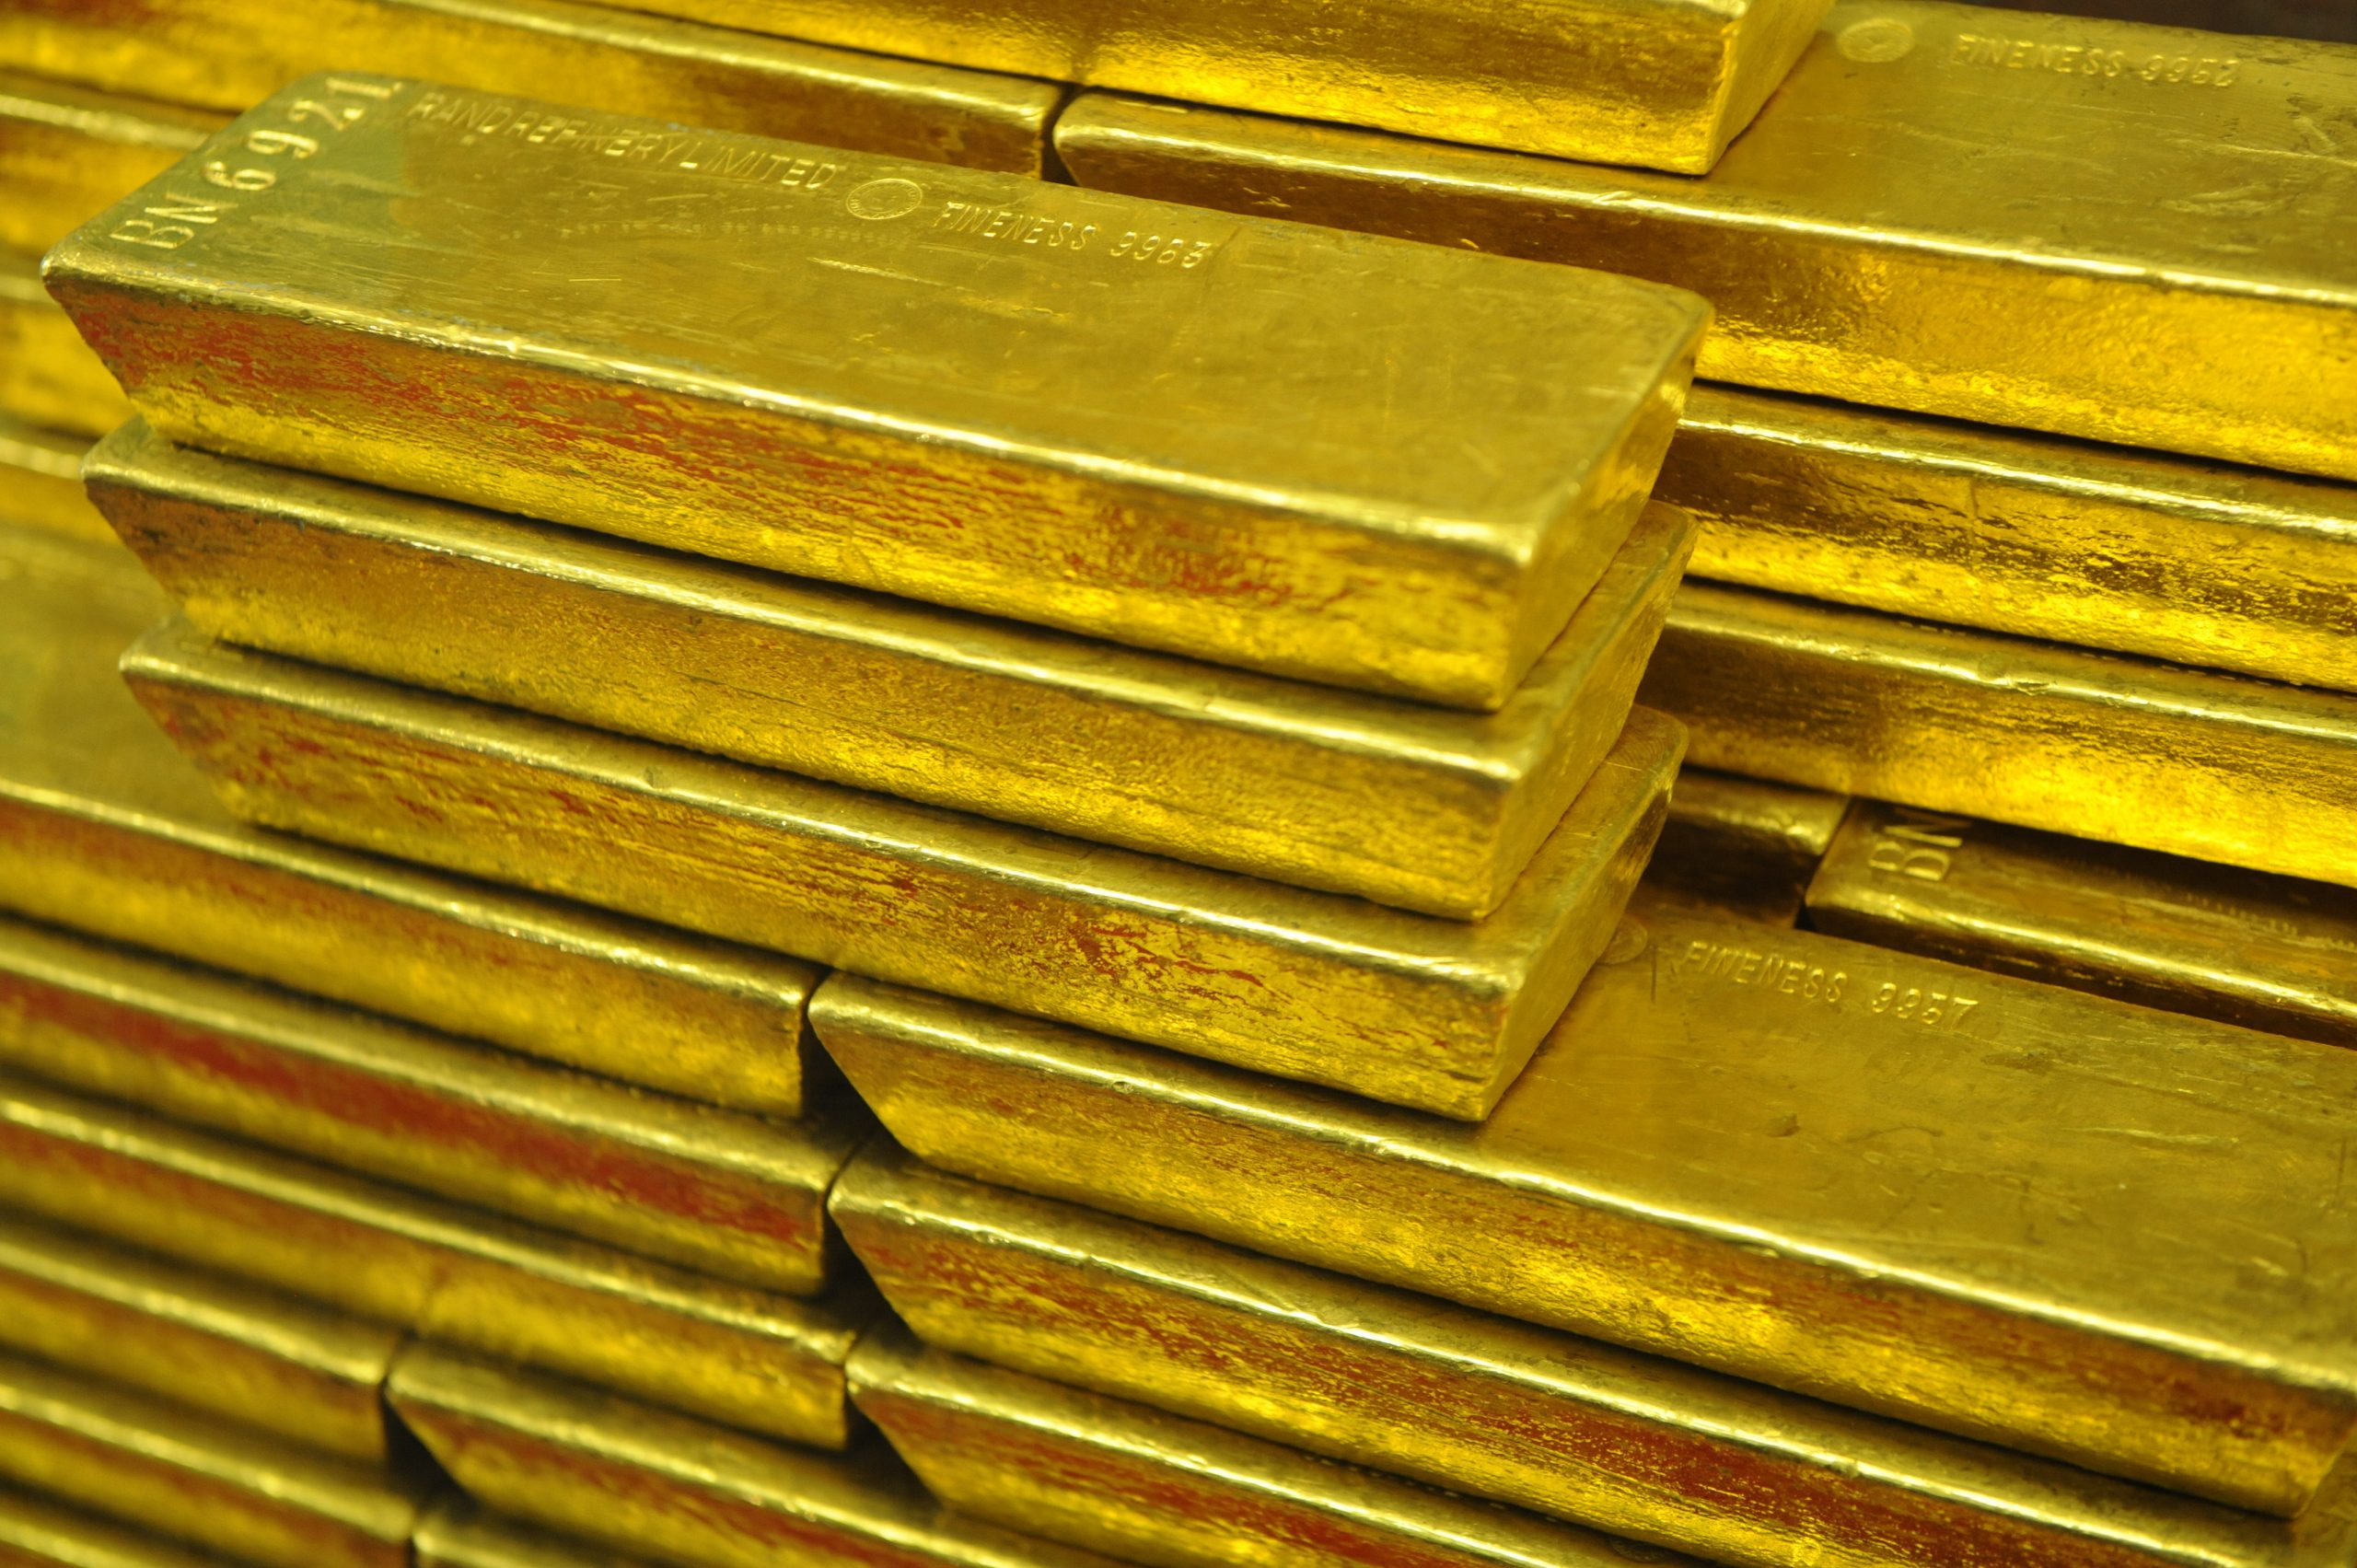 EY defeated in gold-smuggling whistleblower case